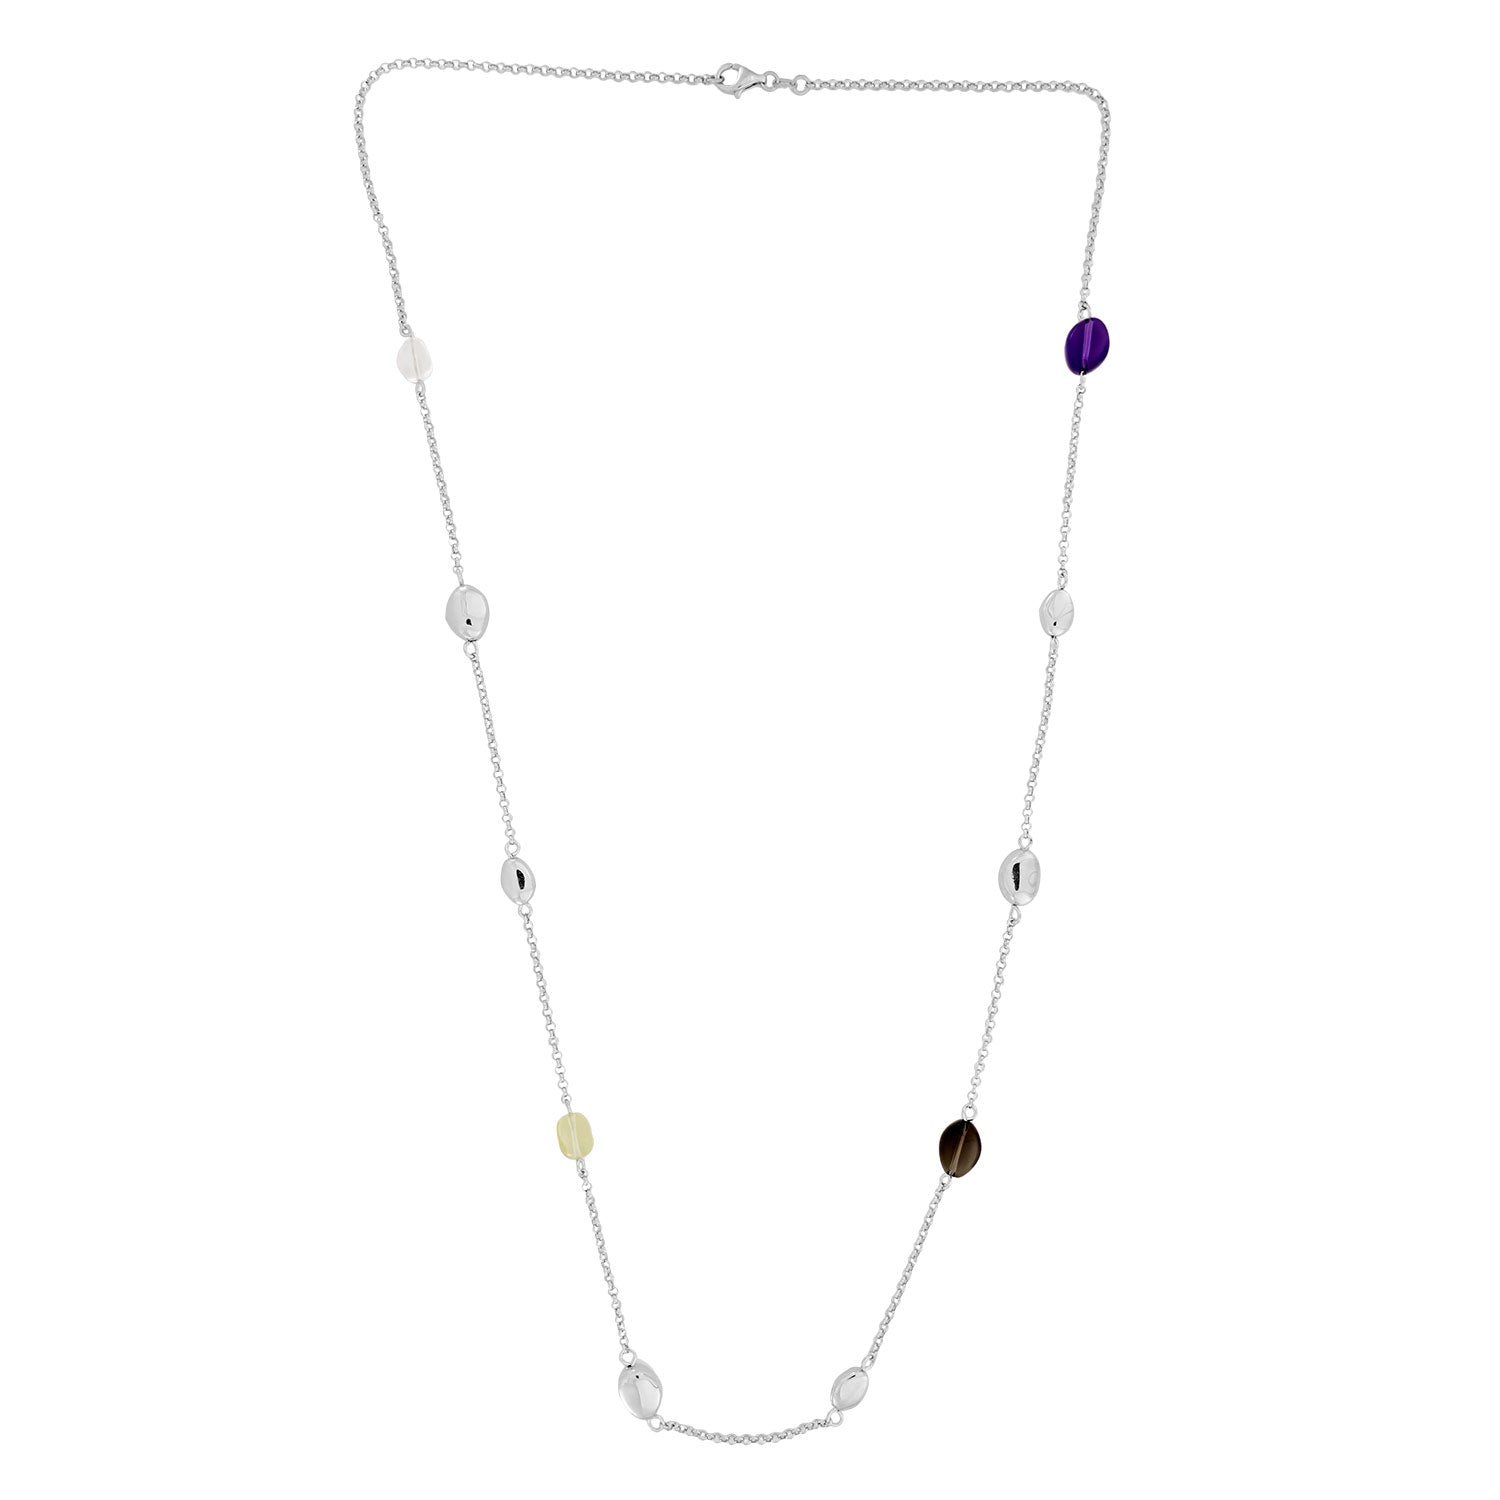 Malham Long Silver Necklace with Amethyst and Quartz